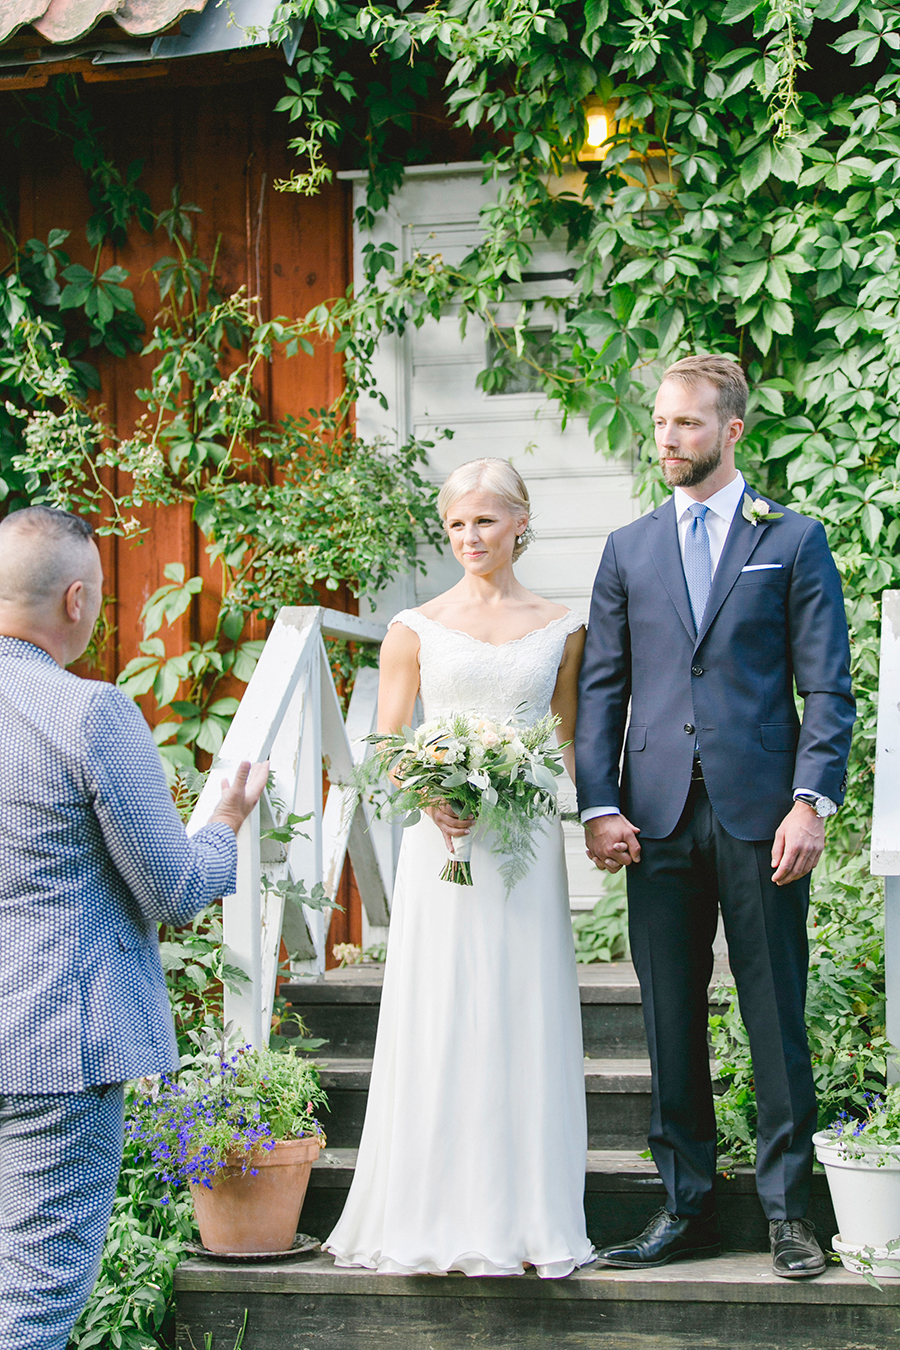 rebeccahansson.com-wedding-Elin-and-Peder-august-13th-2016-(366).jpg